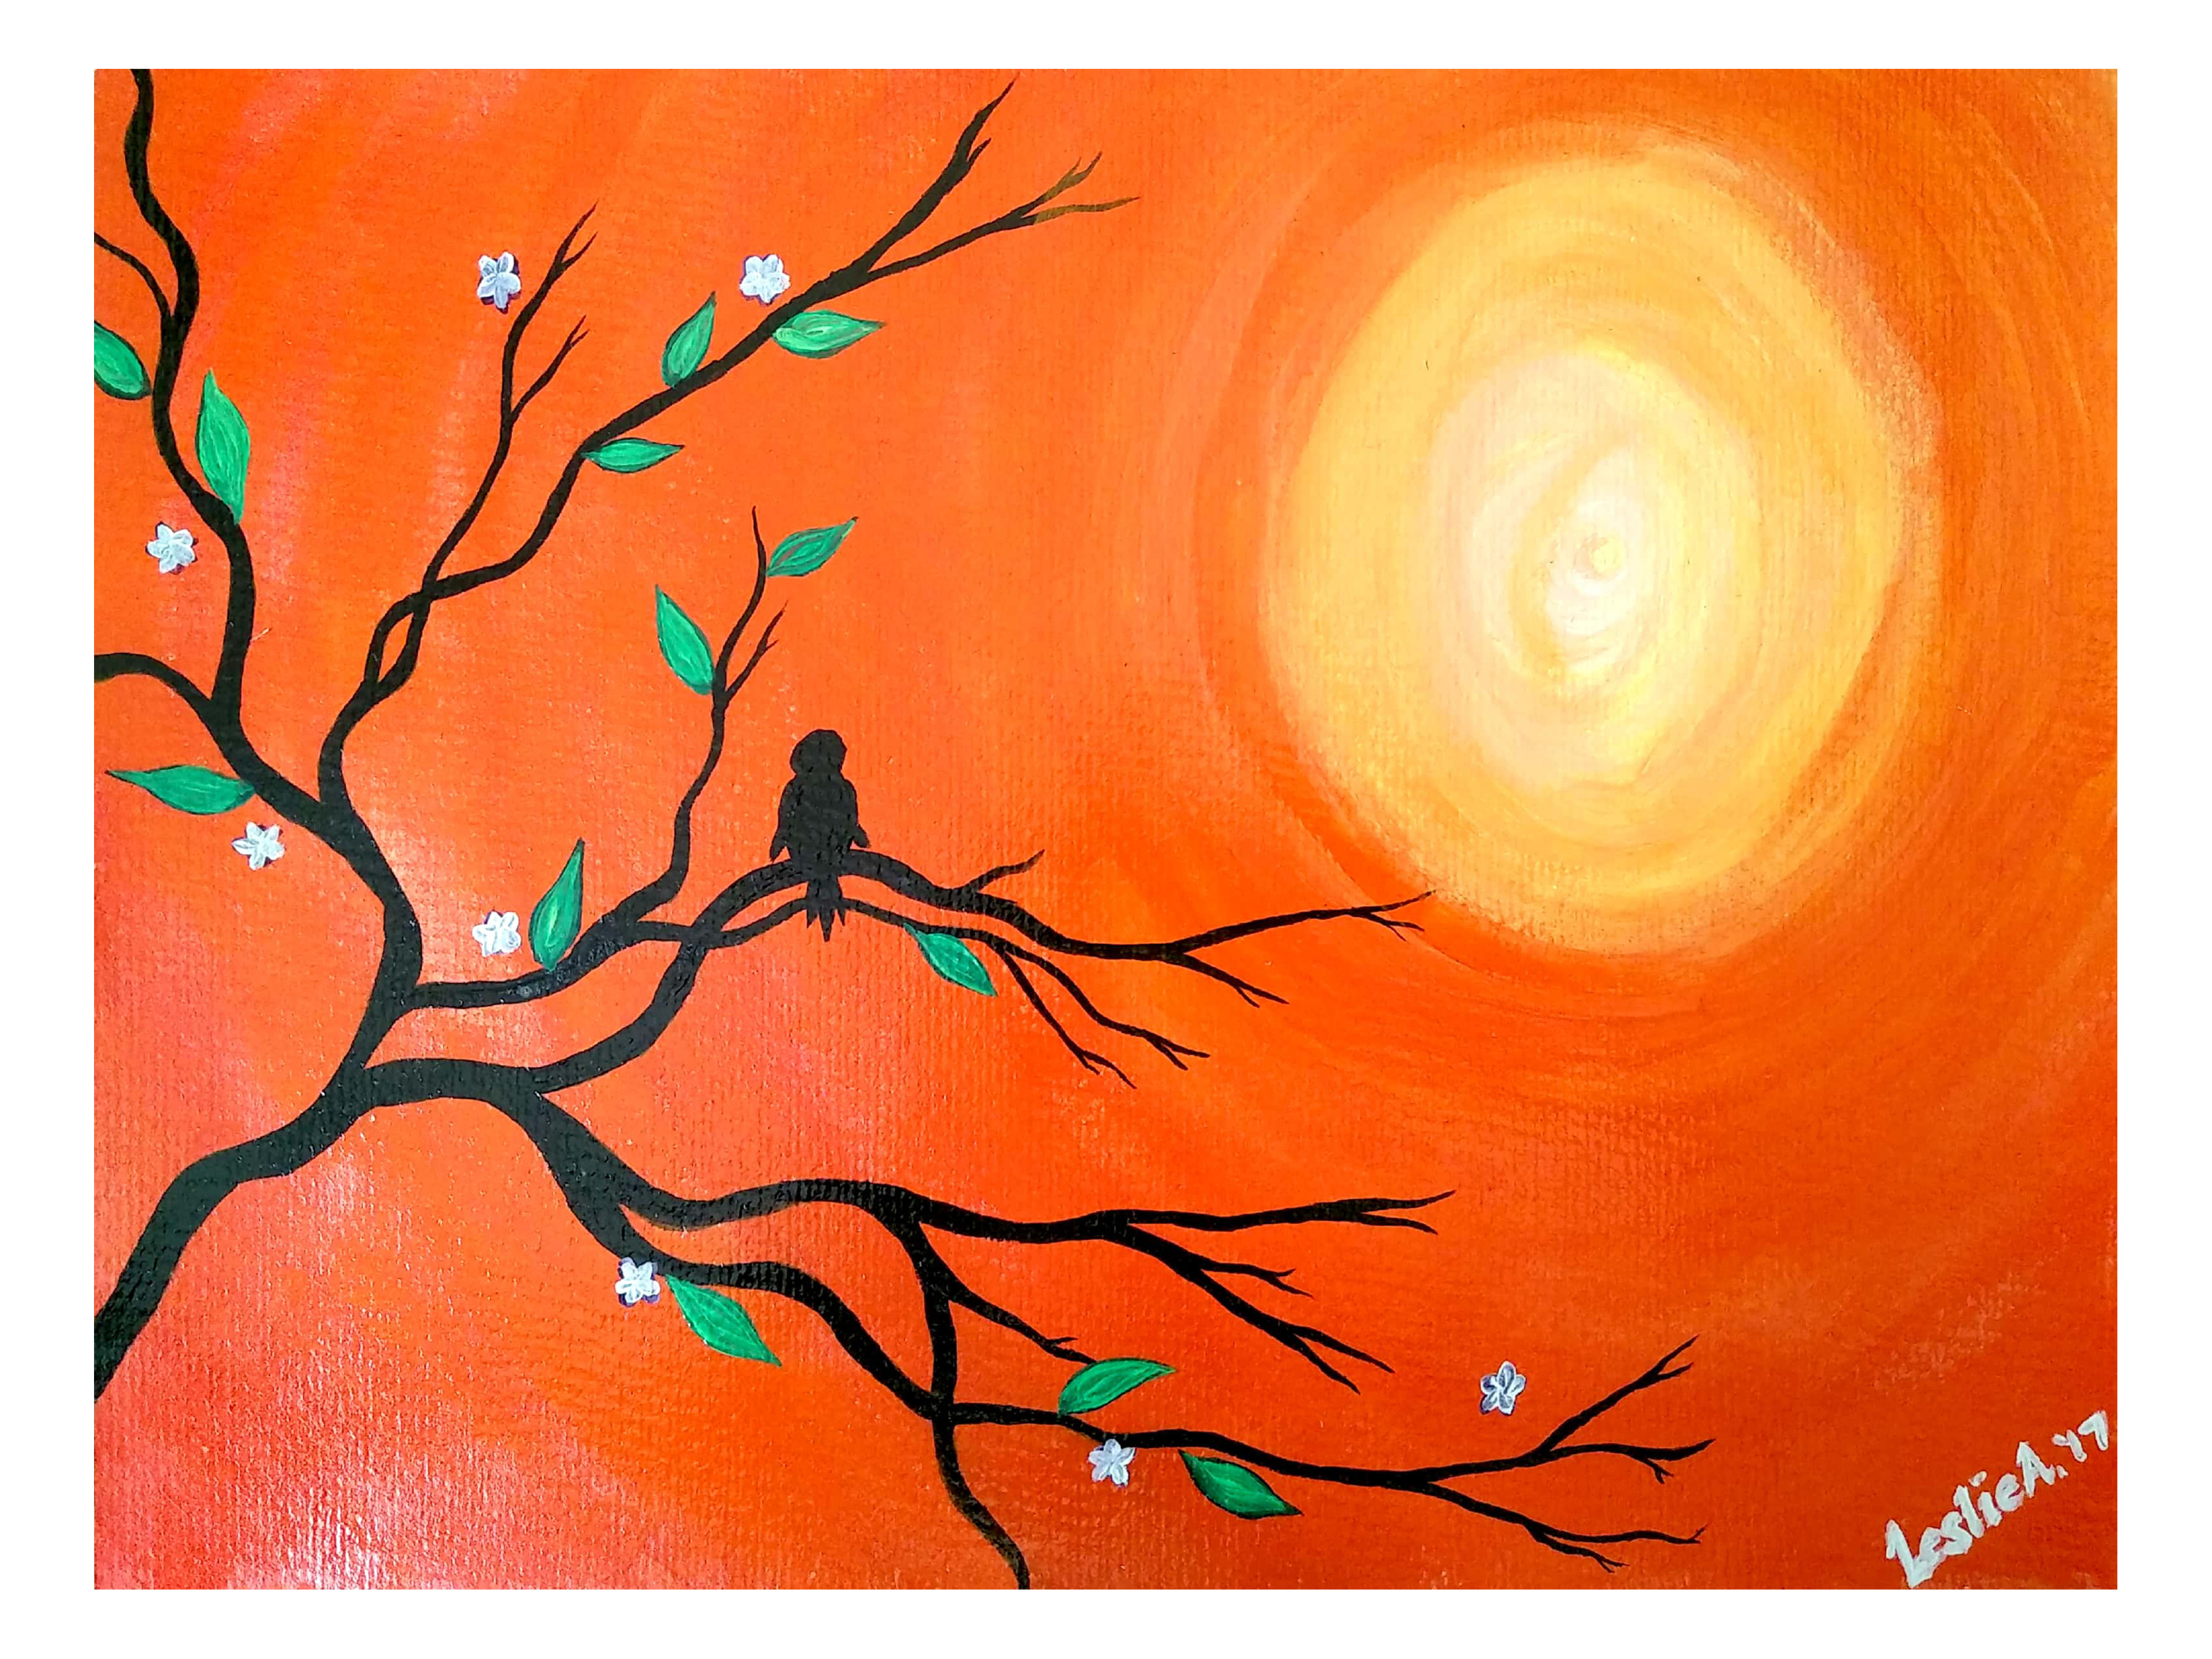 Leslie Abraham: 'the lonely bird', 2017 Acrylic Painting, Nature. Artist Description: Tree, Branches, Lonely Bird, Art Print, Acrylic on Paper...